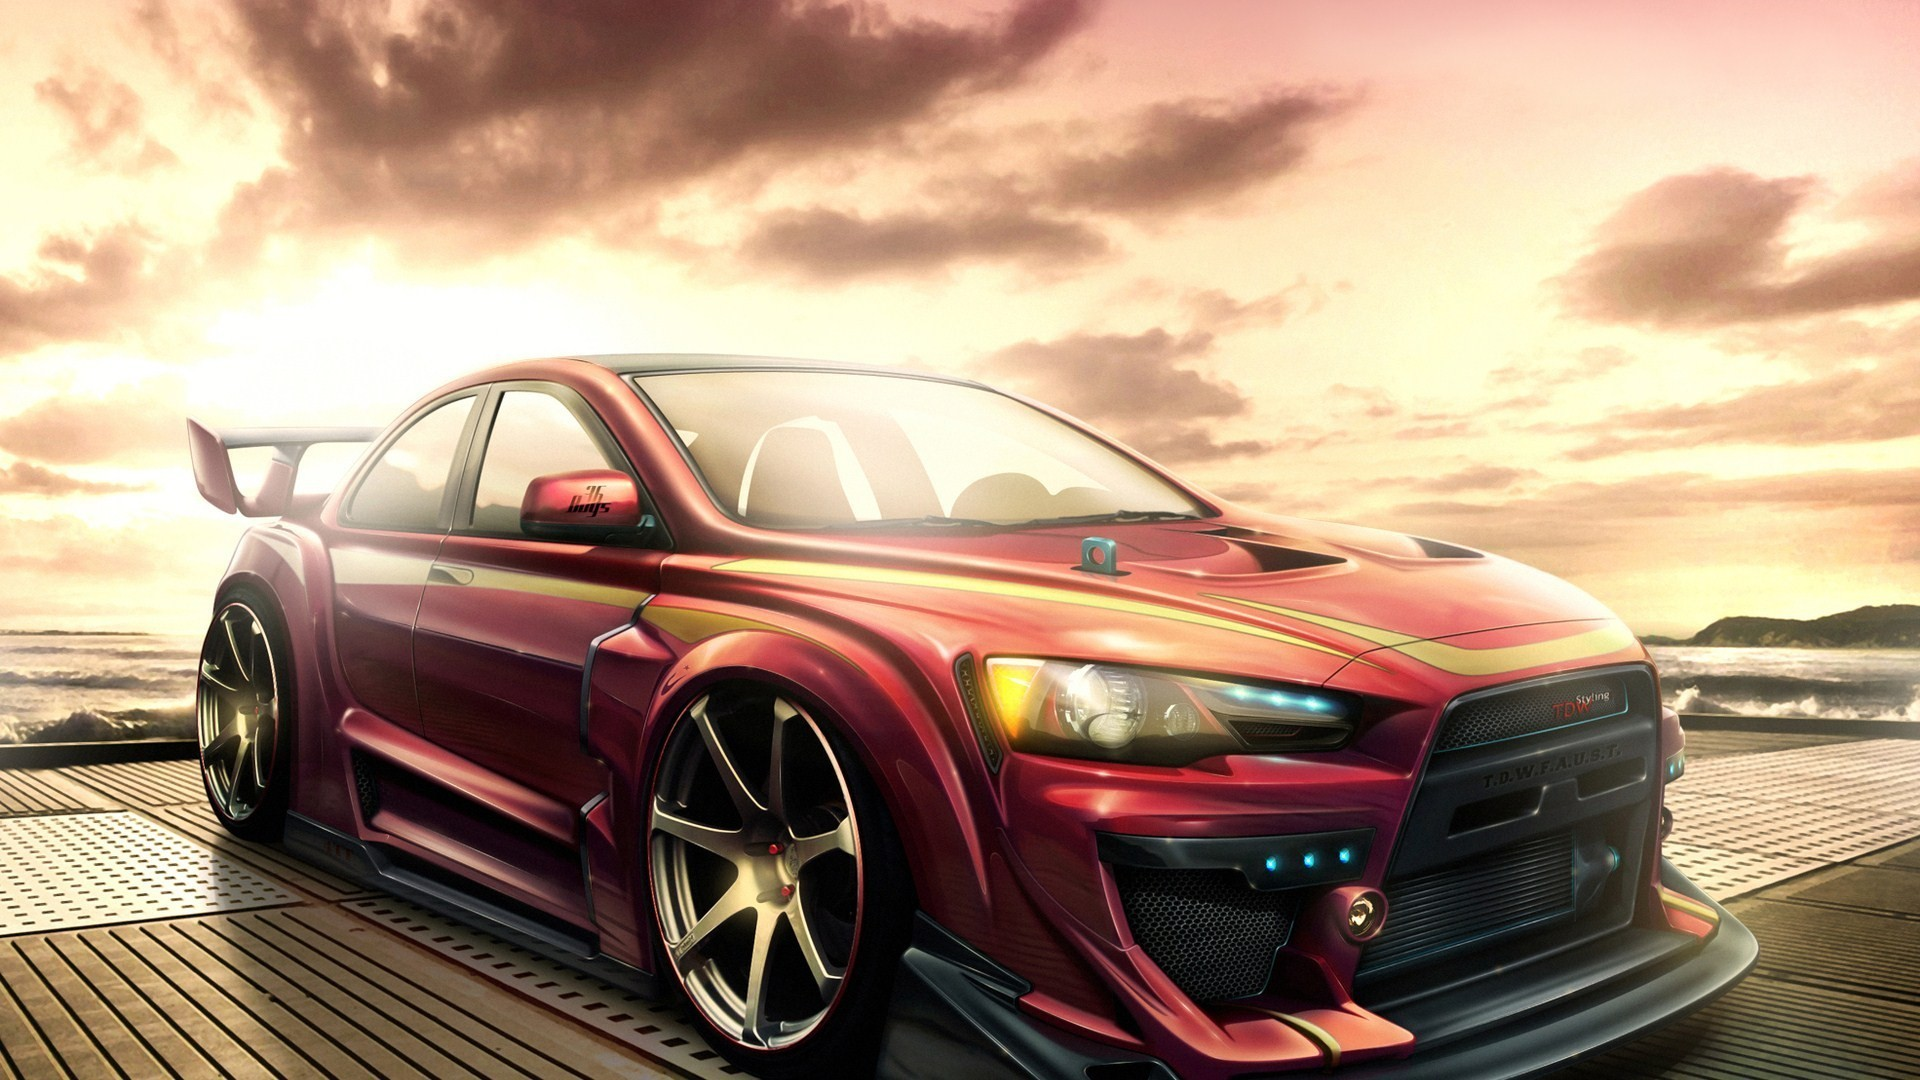 Res: 1920x1080, 1920x1200 mitsubishi lancer evolution evo tuning cars wallpapers cars auto  wallpapers